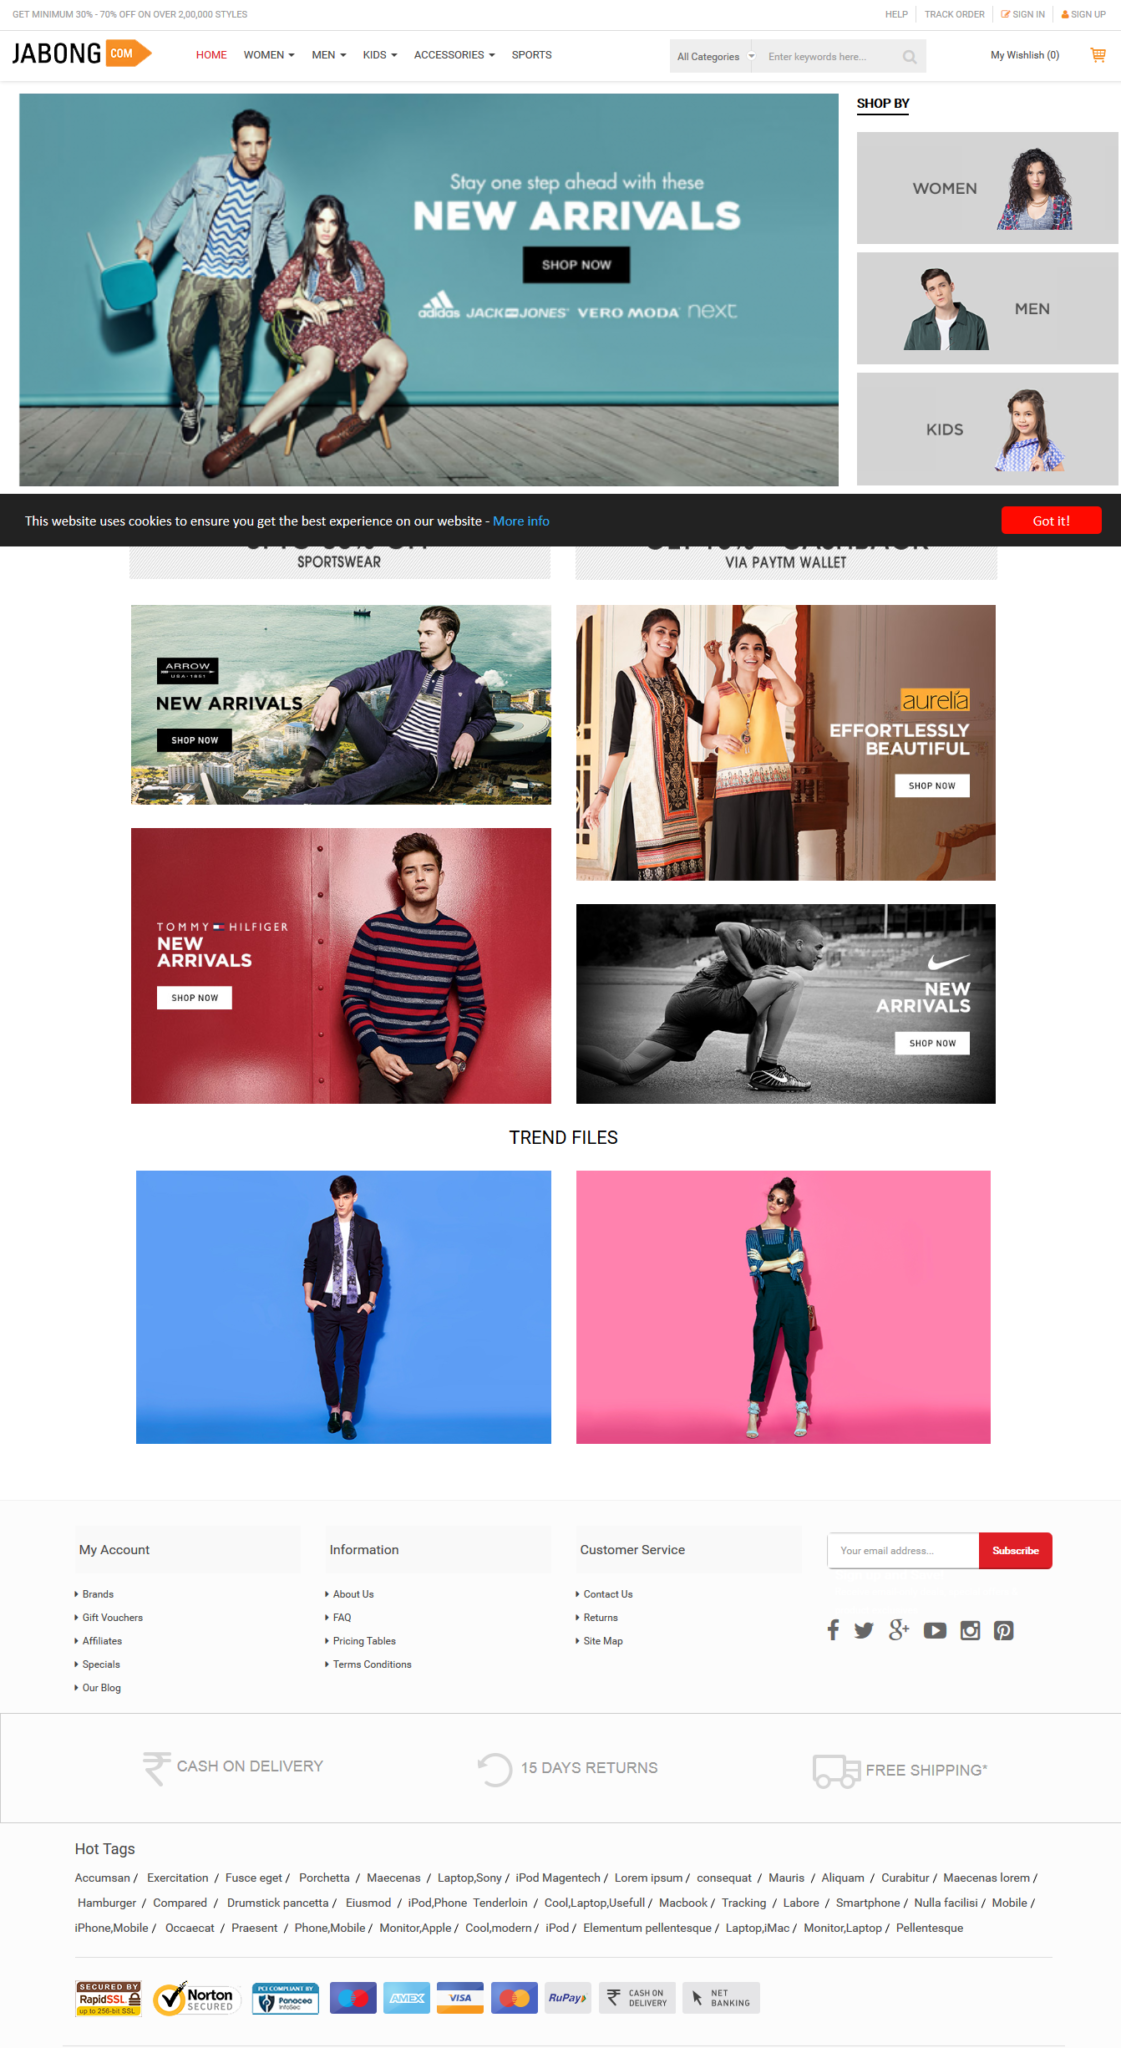 jabong-user-homepage